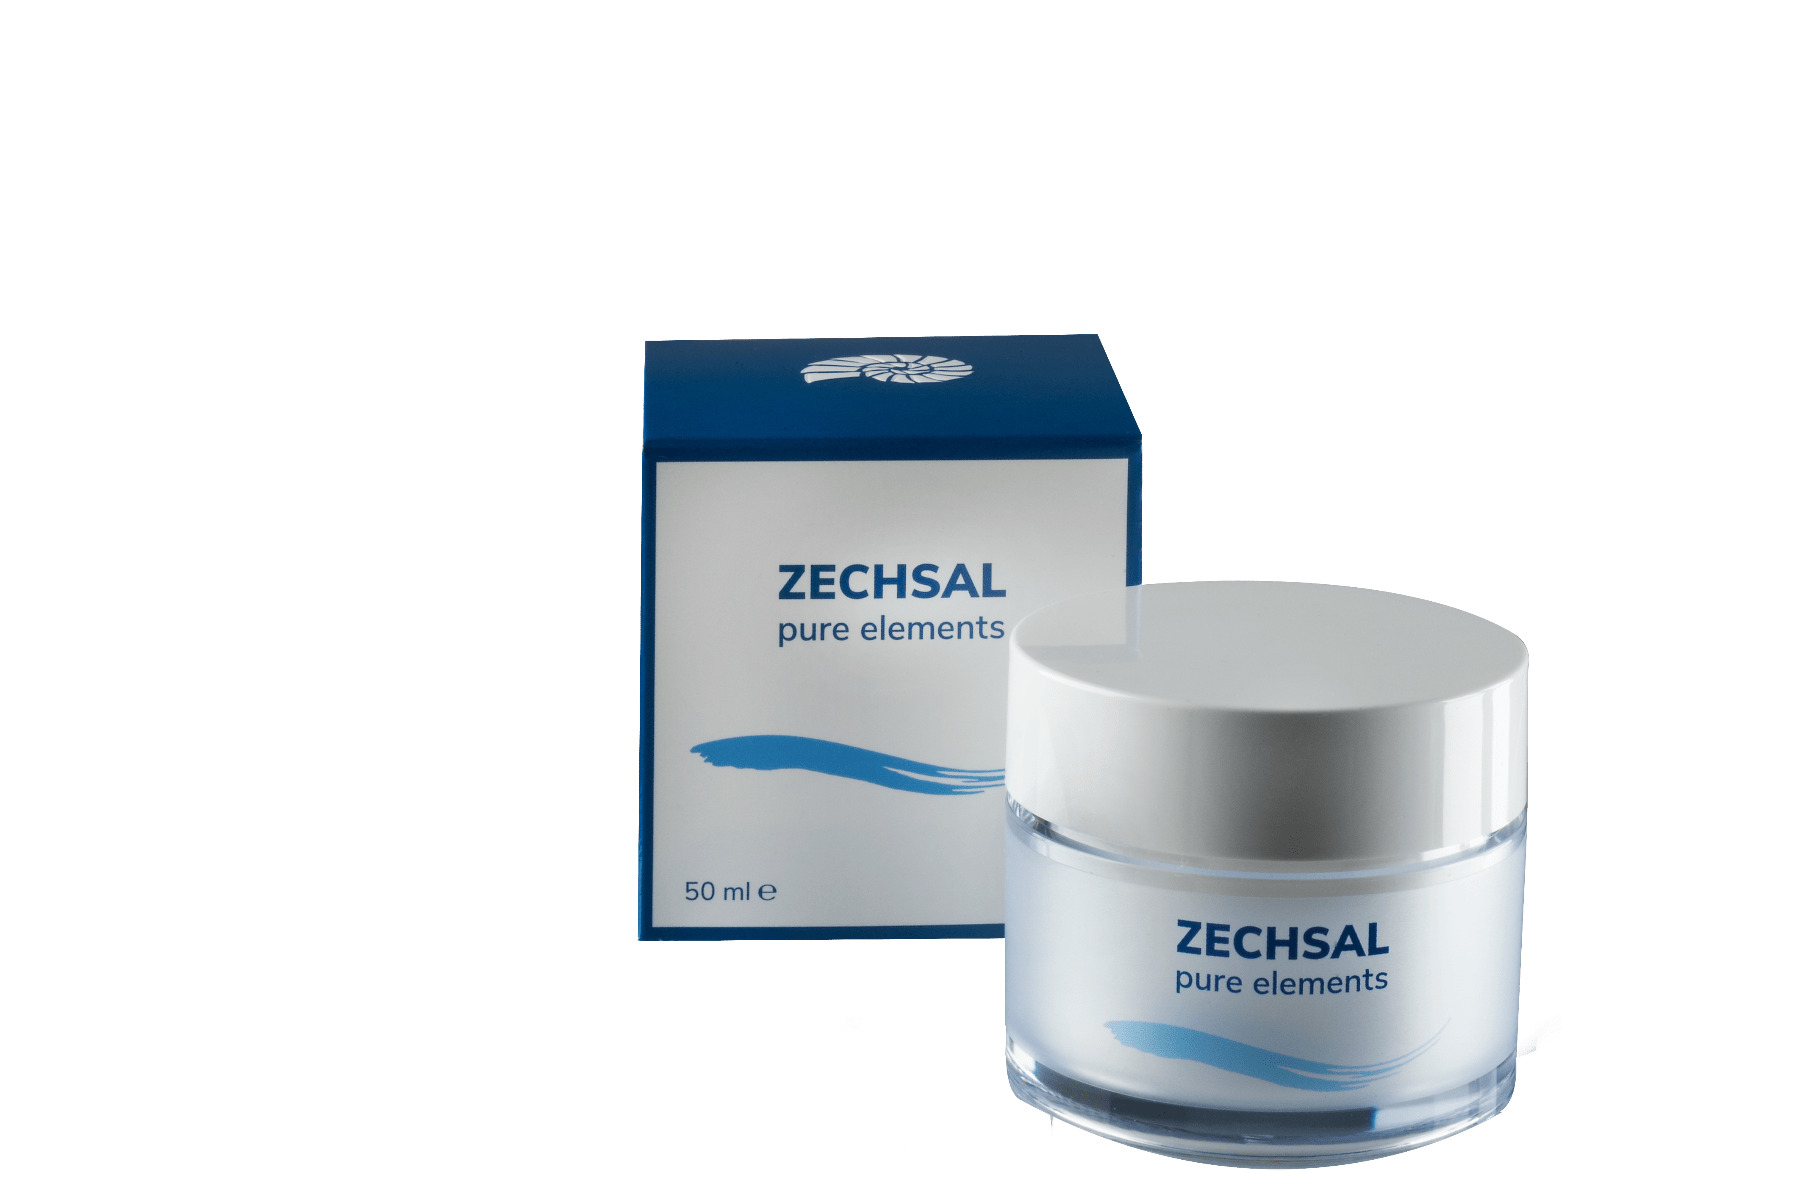 UNIEK! Zechsal Pure Elements balancing cream, 50 ml.